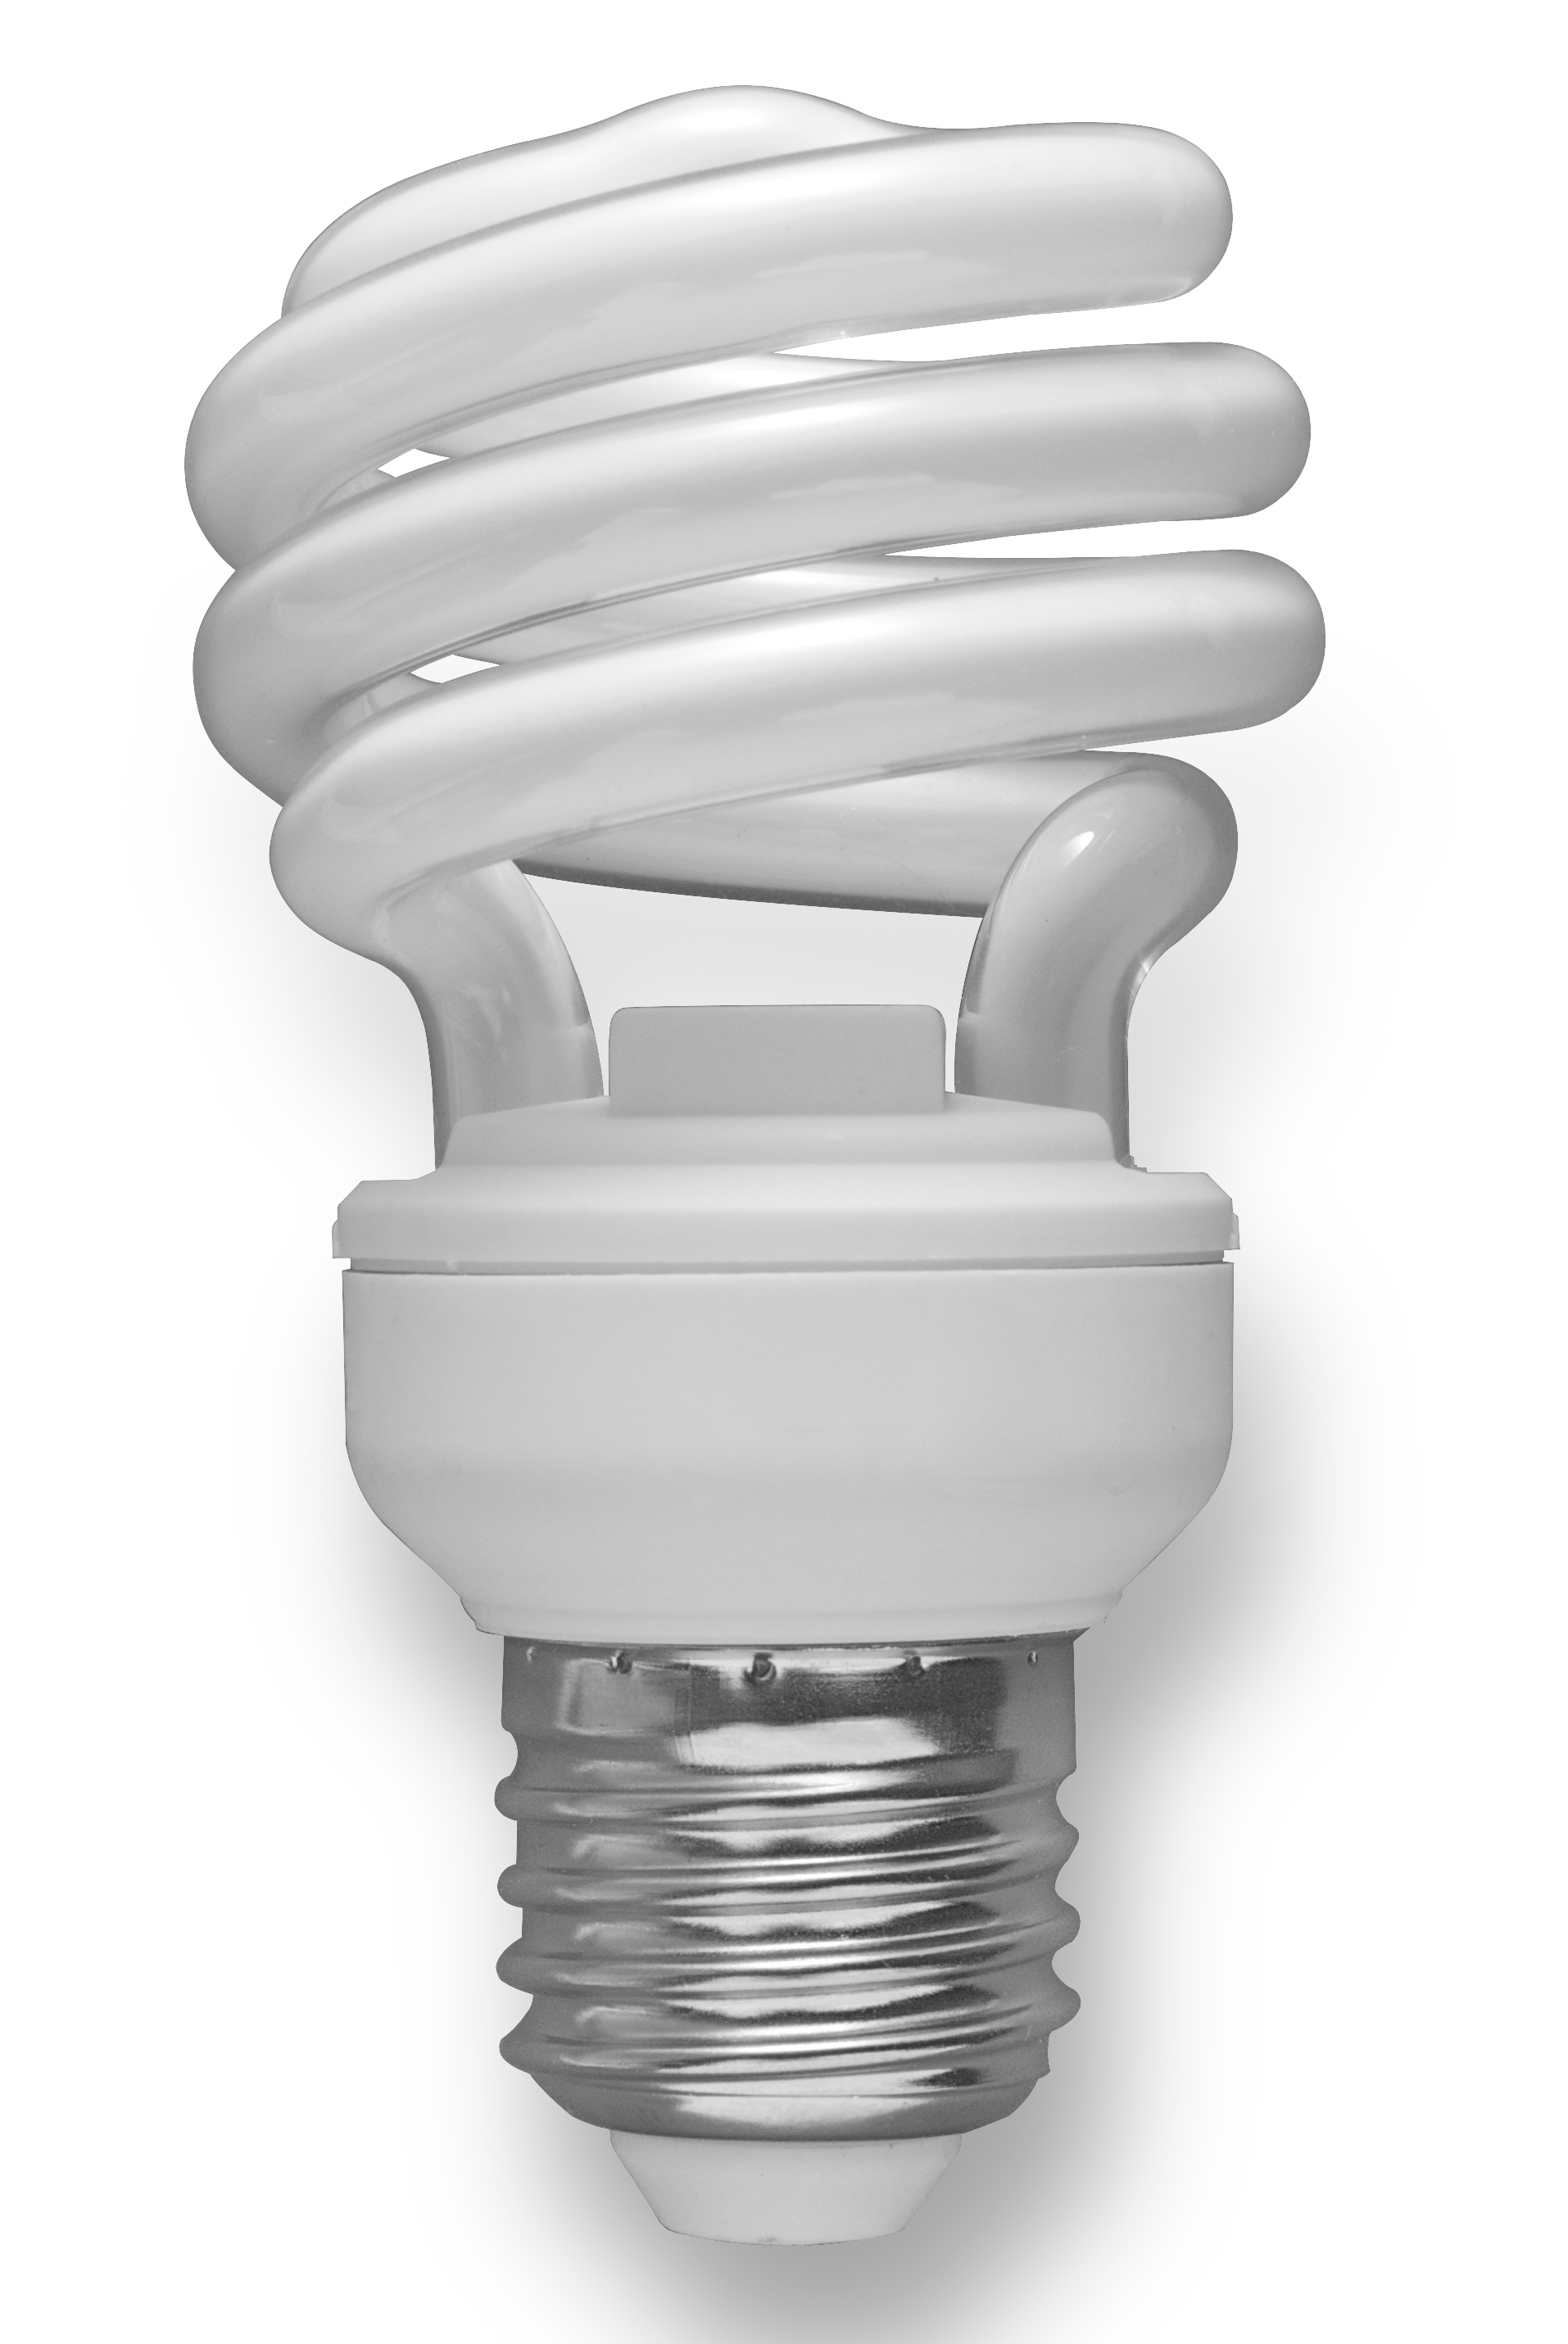 lighting - Does a fluorescent light fixture use more ...